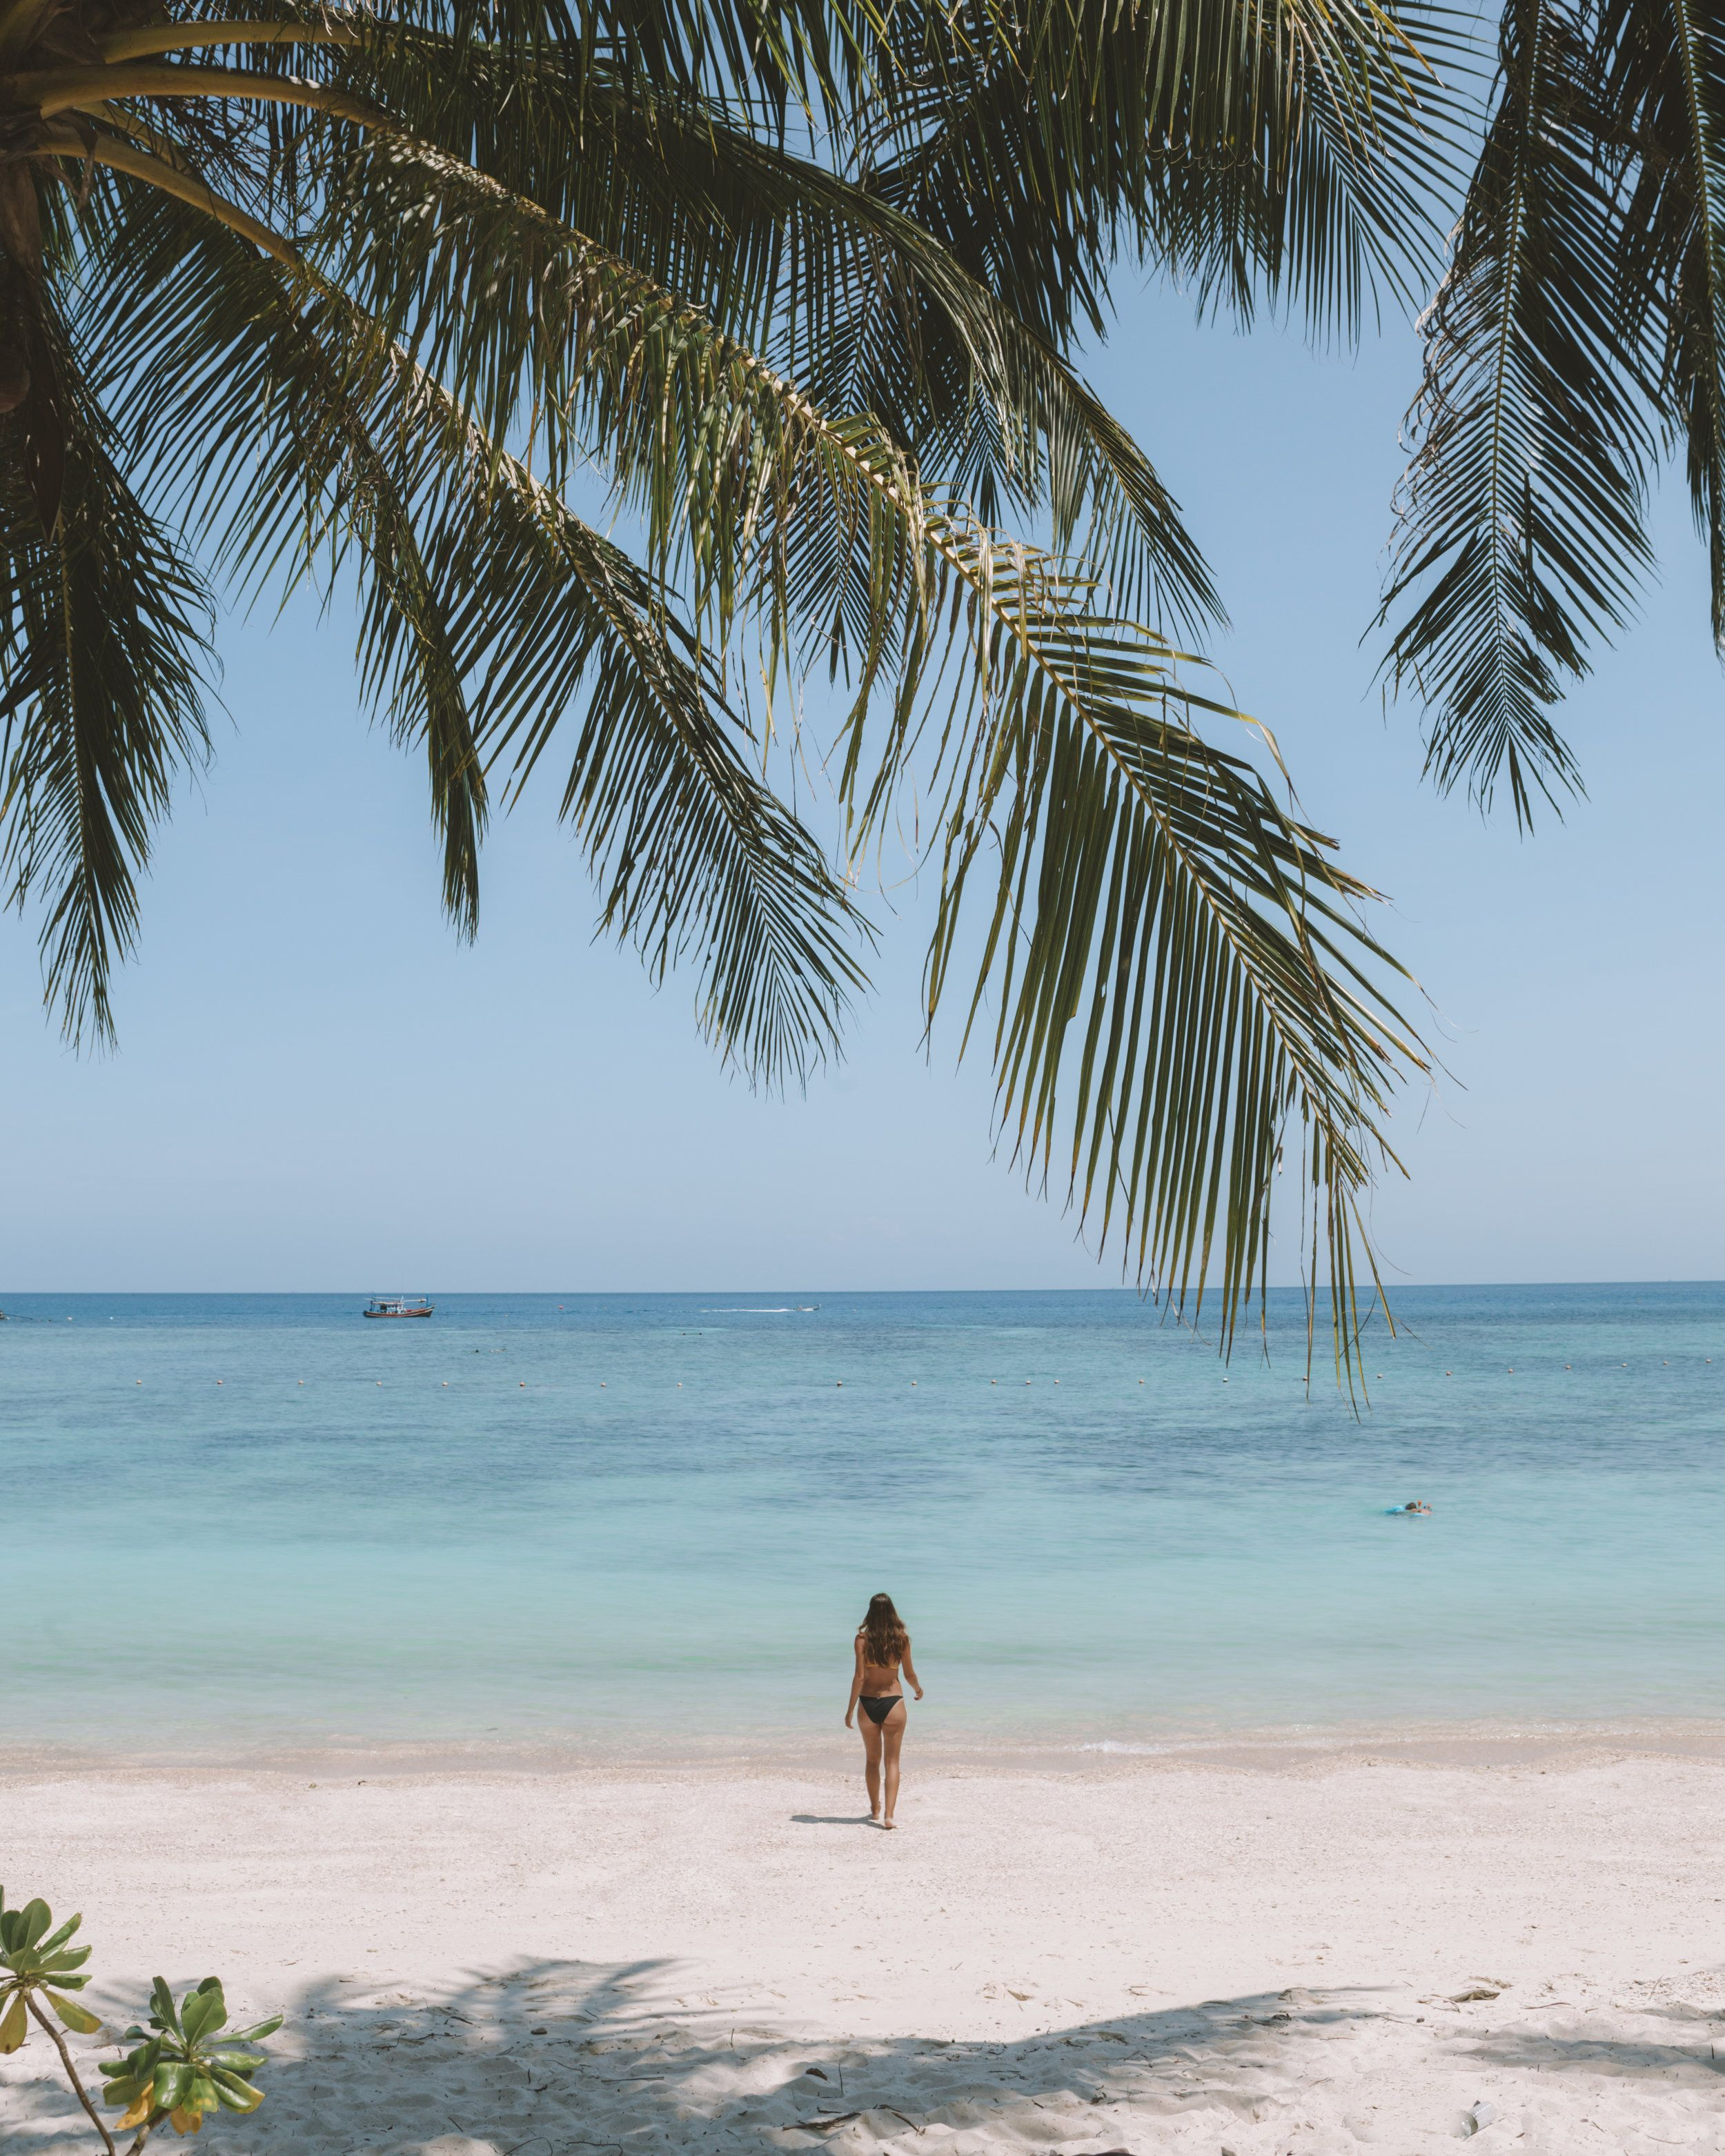 Desert Island Beach: A Week On The Idyllic Beaches Of Koh Tao (With Images